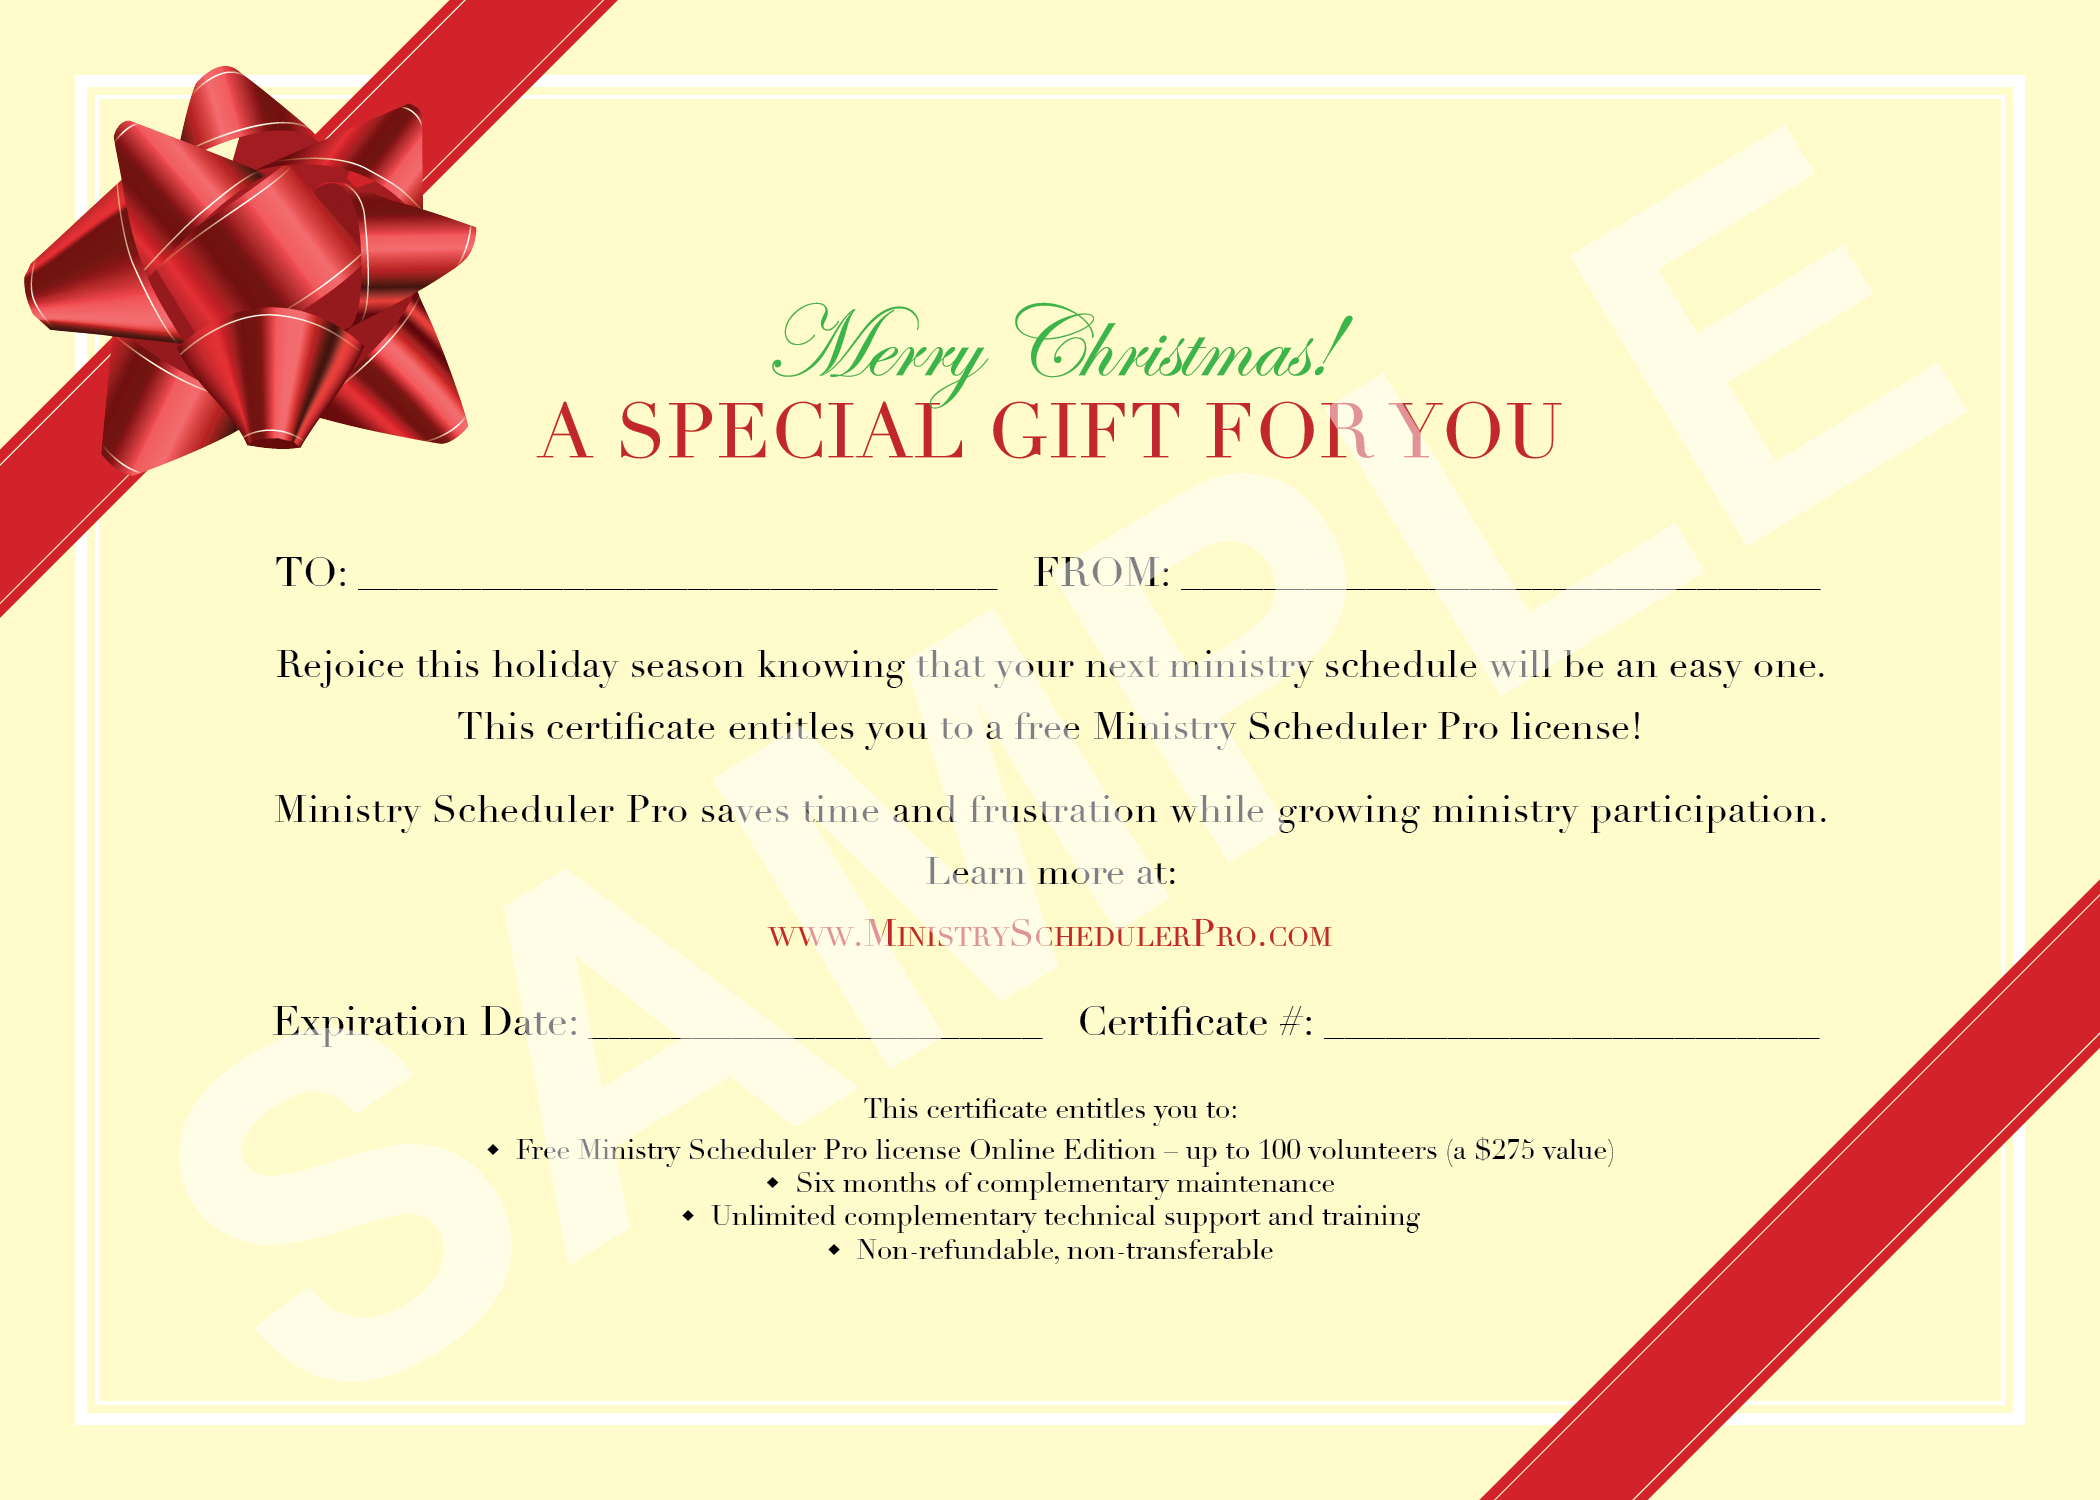 sample-gift-certificate-template